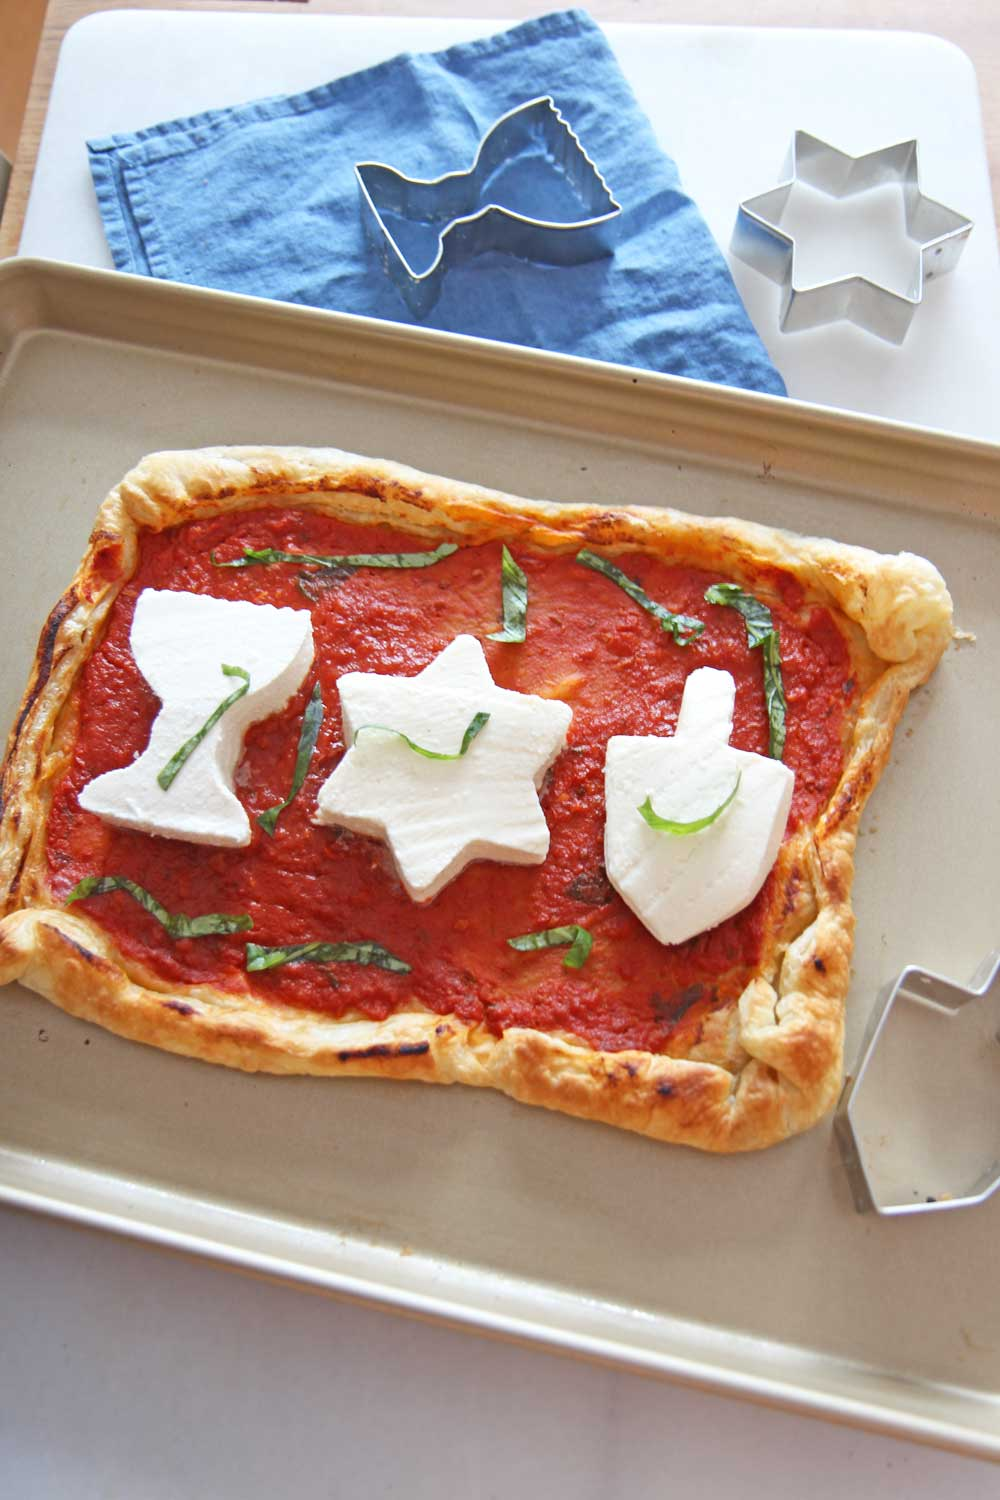 Hanukah Puff Pastry Pizza. Butter puff pastry with garlicky marinara, and mozzarella makes a festive holiday pizza! www.ChopHappy.com #HolidayRecipe #Hanukahrecipe